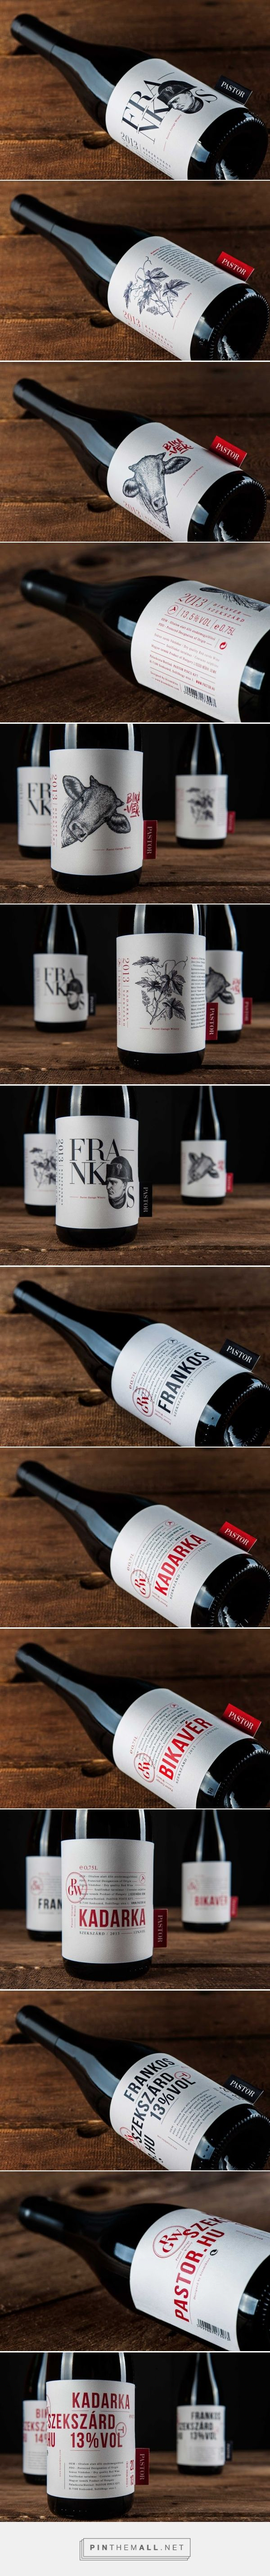 Pastor Winery's Red Wines - Packaging of the World - Creative Package Design Gallery - http://www.packagingoftheworld.com/2016/05/pastor-winerys-red-wines.html